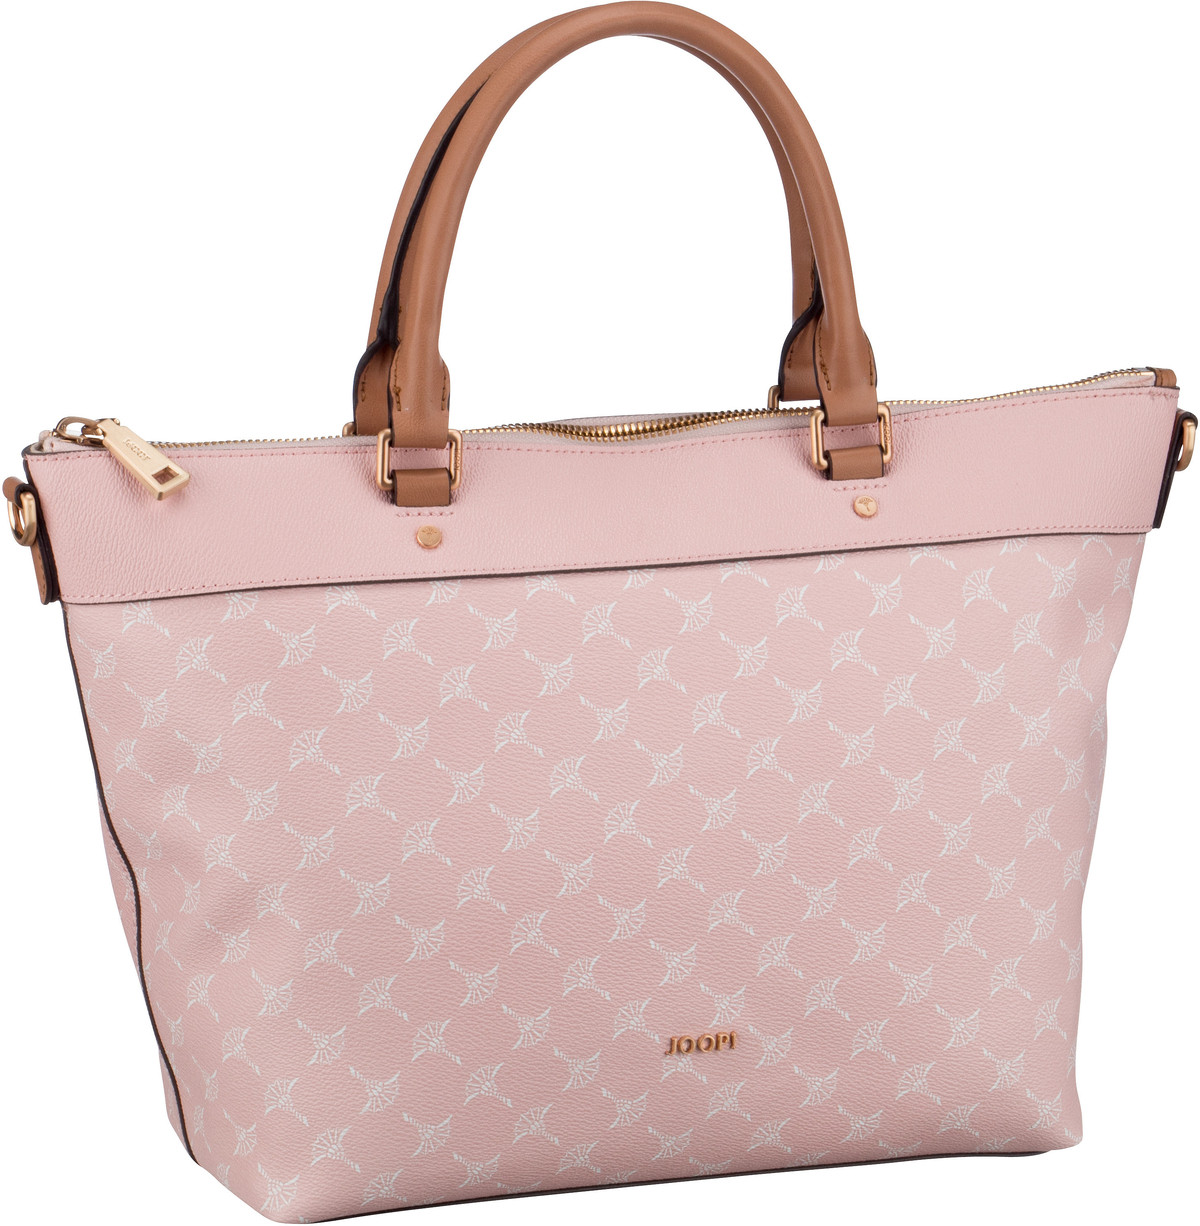 Handtasche Thoosa Cortina Handbag Small Light Pink